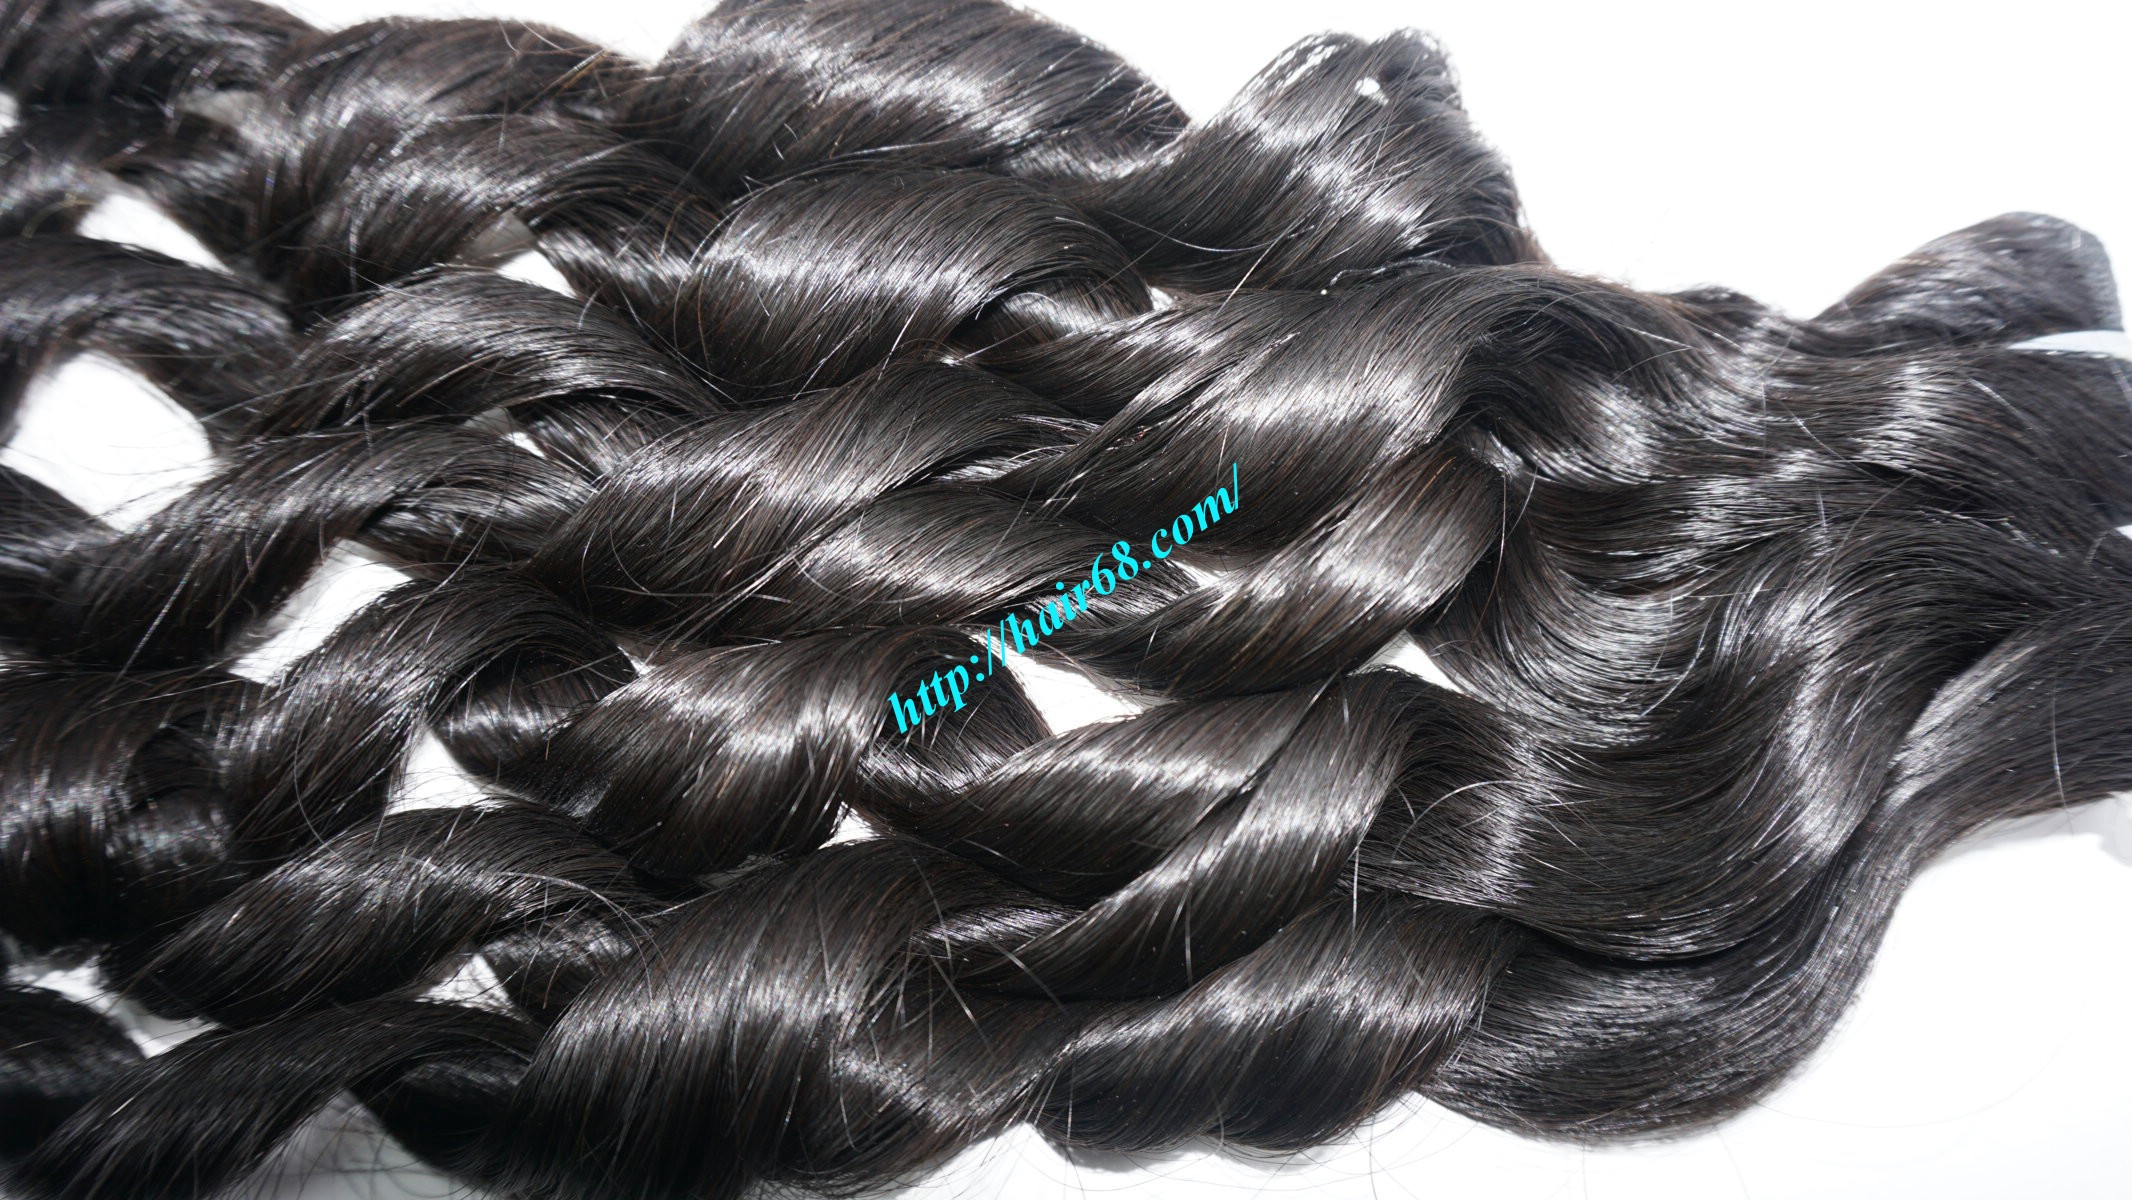 20 inch - Weave Loose Curly Hair Extensions - Double Drawn 13